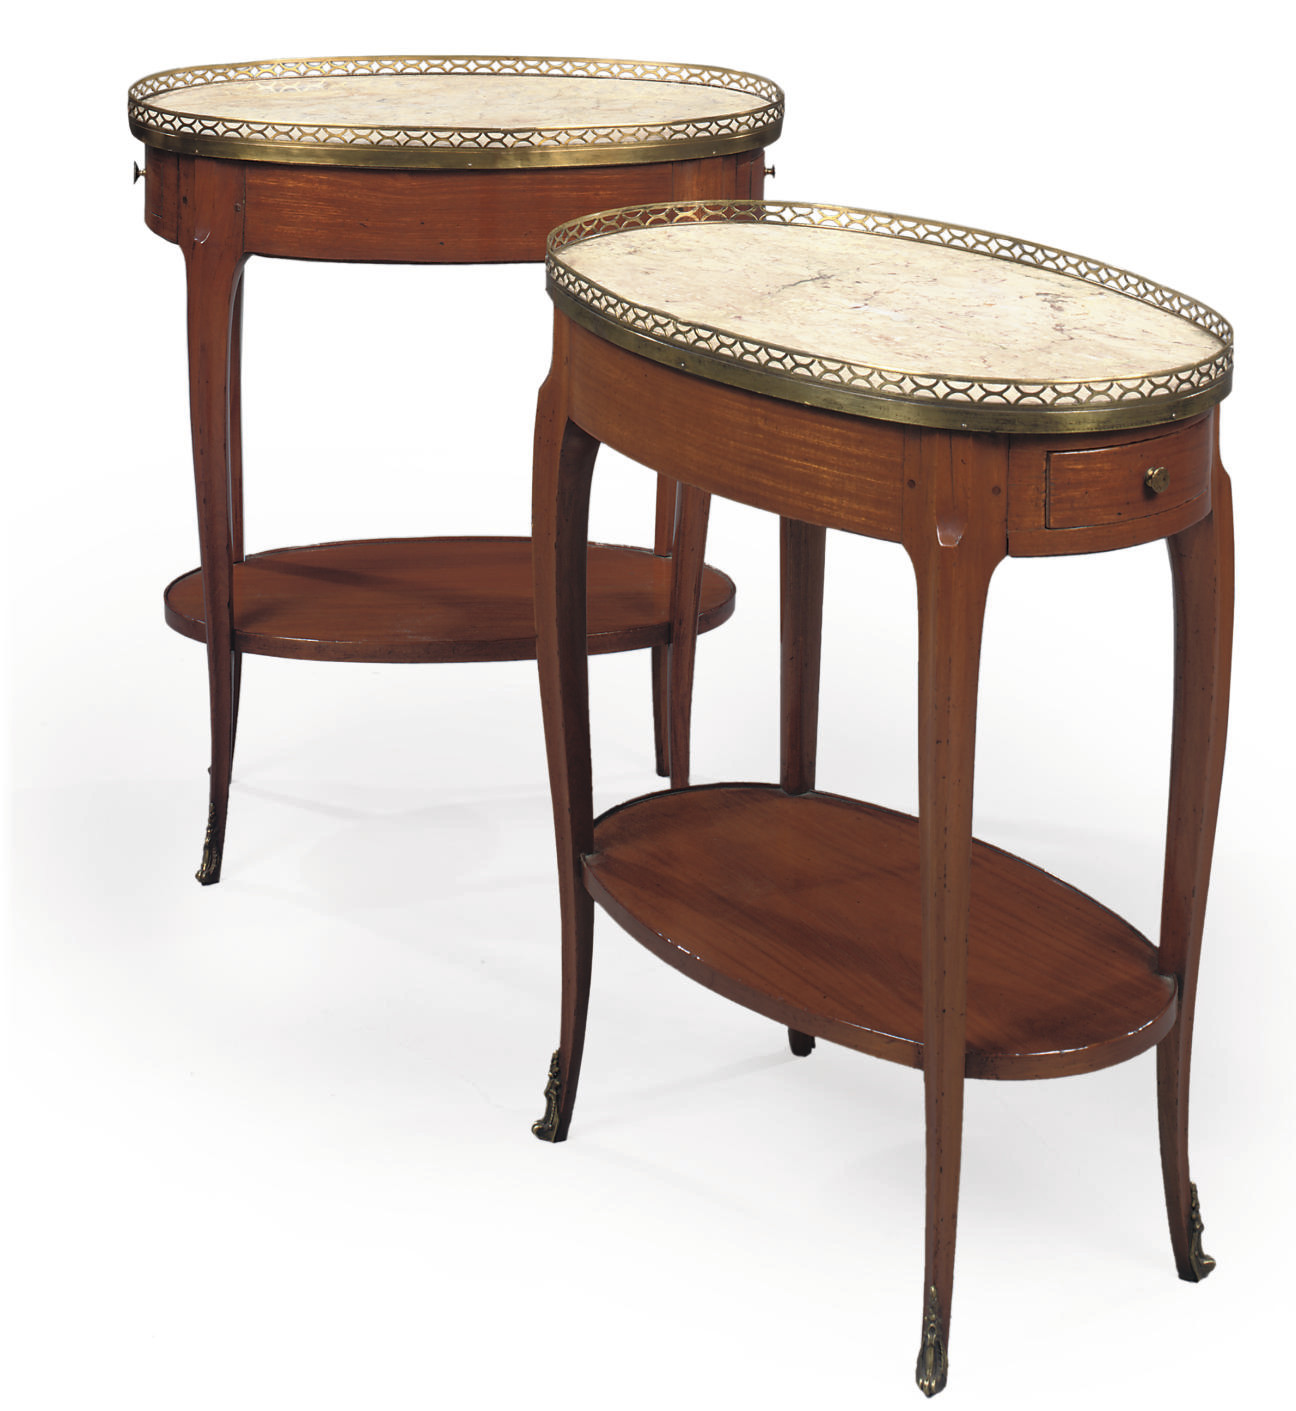 A PAIR OF FRENCH ORMOLU-MOUNTED BOIS SATINE OCCASIONAL TABLES